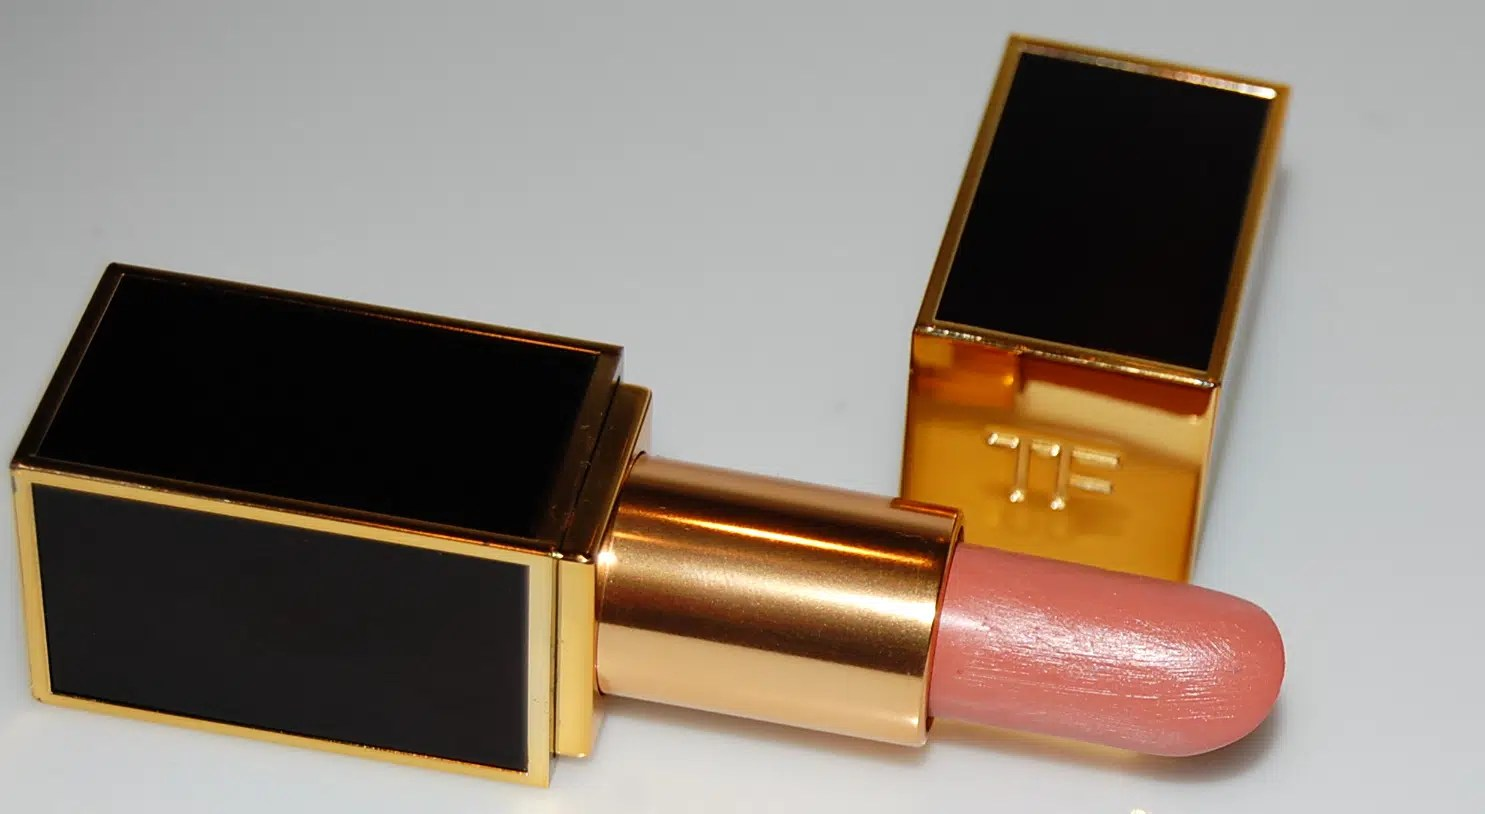 Tom Ford Spanish Pink Lip Color Review Ingredients Chicscience